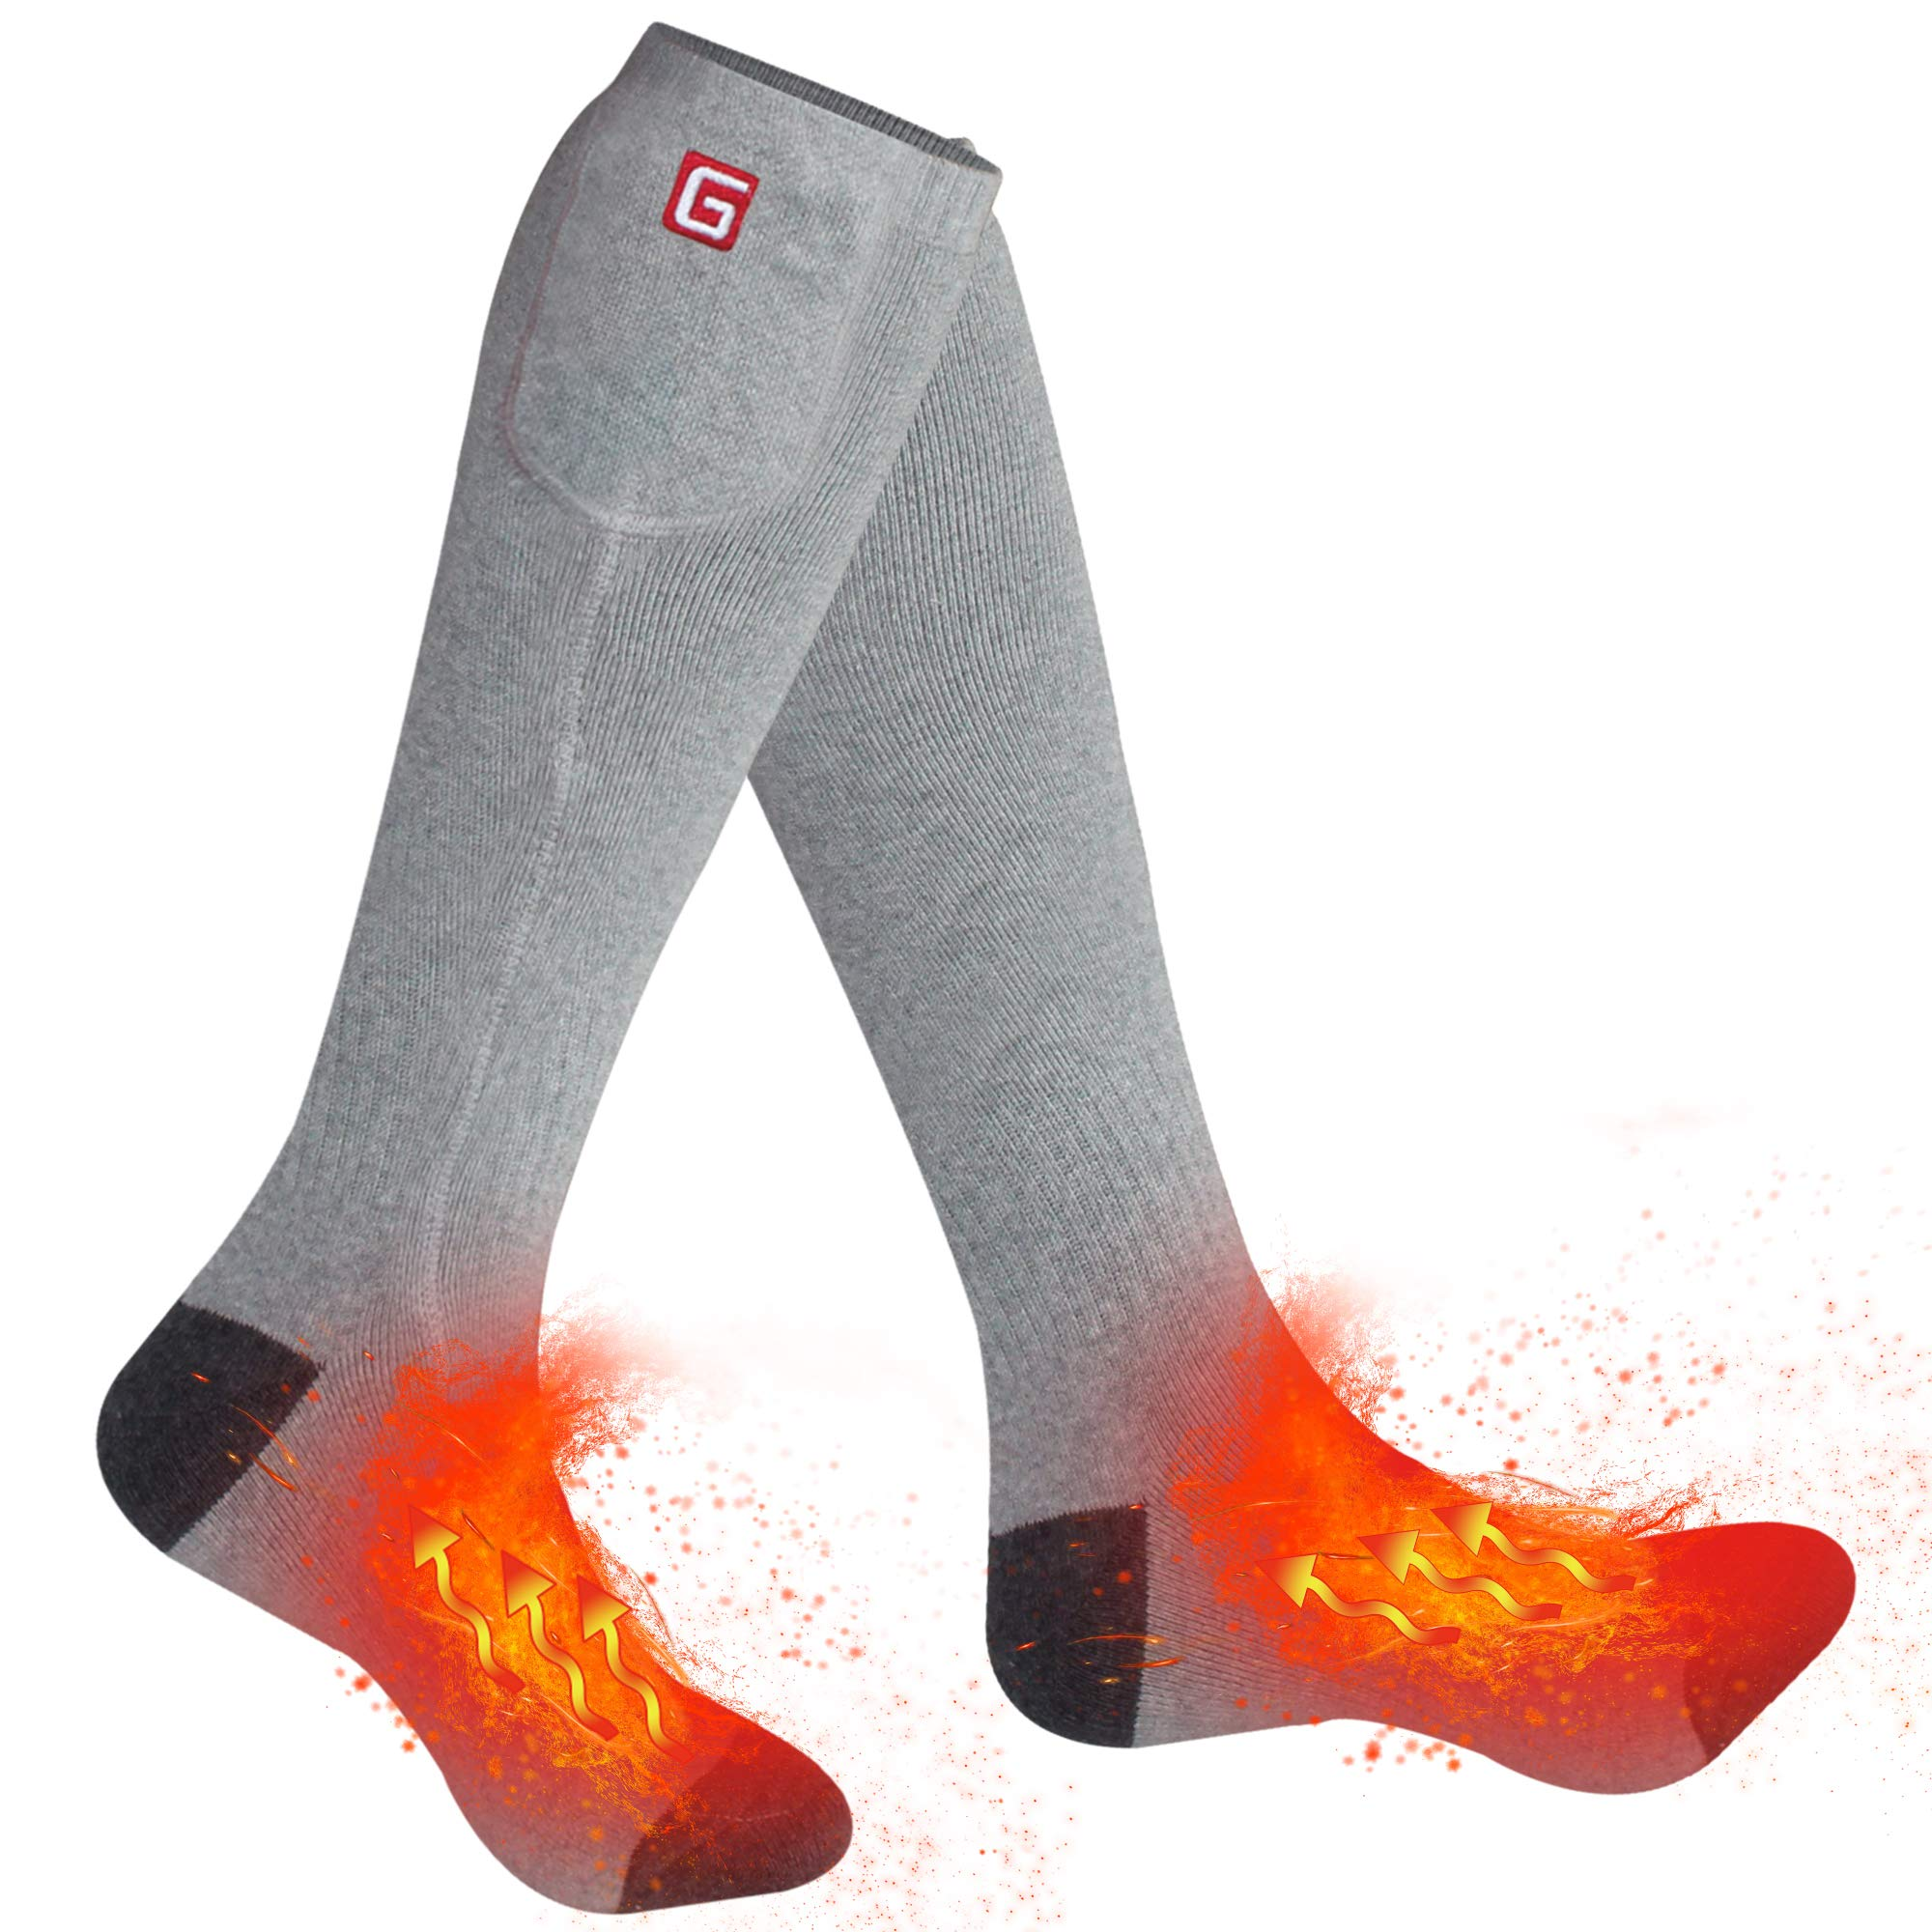 Autocastle Rechargeable Electric Heated Socks,Men Women Battery Powered Heated Socks Kit,Winter Warm Thermal Heated Socks for Chronically Cold Feet,Novelty Sports&Outdoors Camping Socks (Grey) by Autocastle